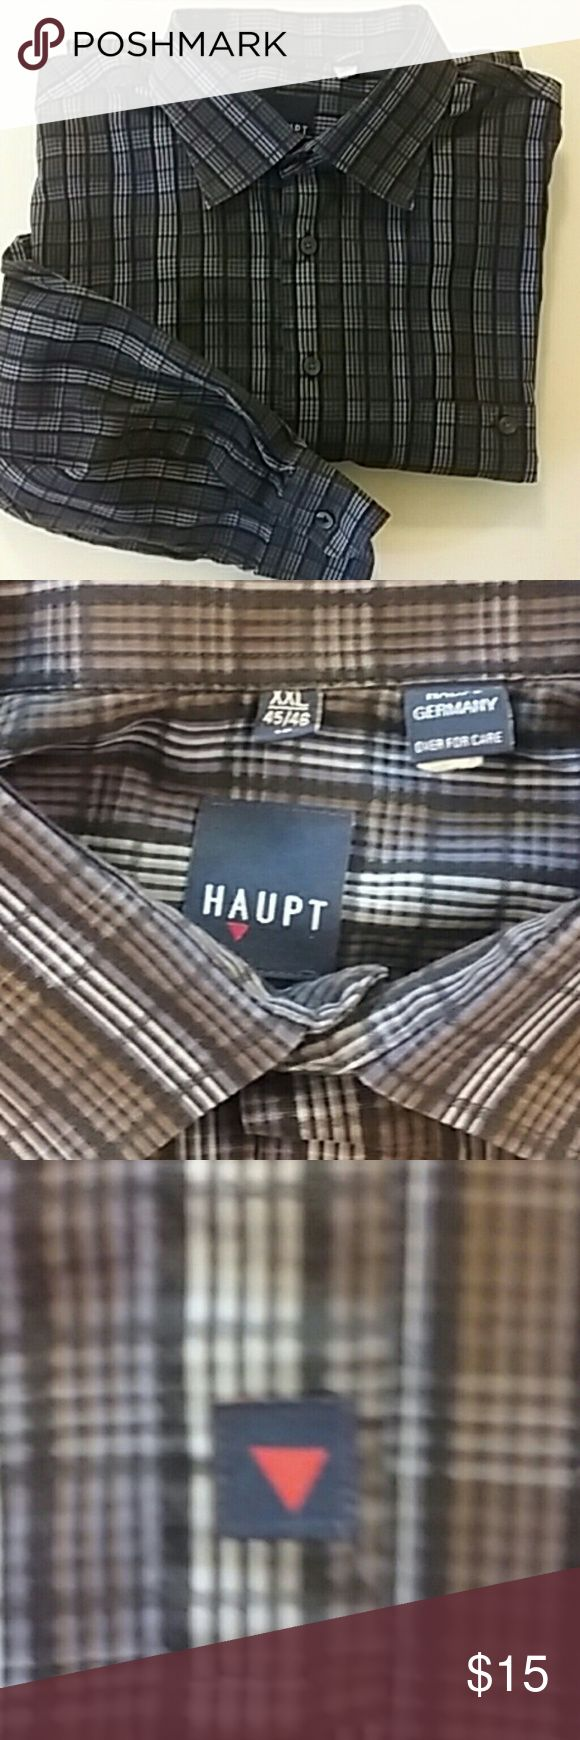 HAUPT Casual Button Down Designer Casual Button down shirt by HAUPT in EUC. This shirt has no holes, stains, loose threads, worn spots, pilling, fading, etc. All buttons are firmly attached. Get this nice designer shirt at an amazing bargain and bundle with other pieces from my closet to save even more $$$ HAUPT Shirts Casual Button Down Shirts